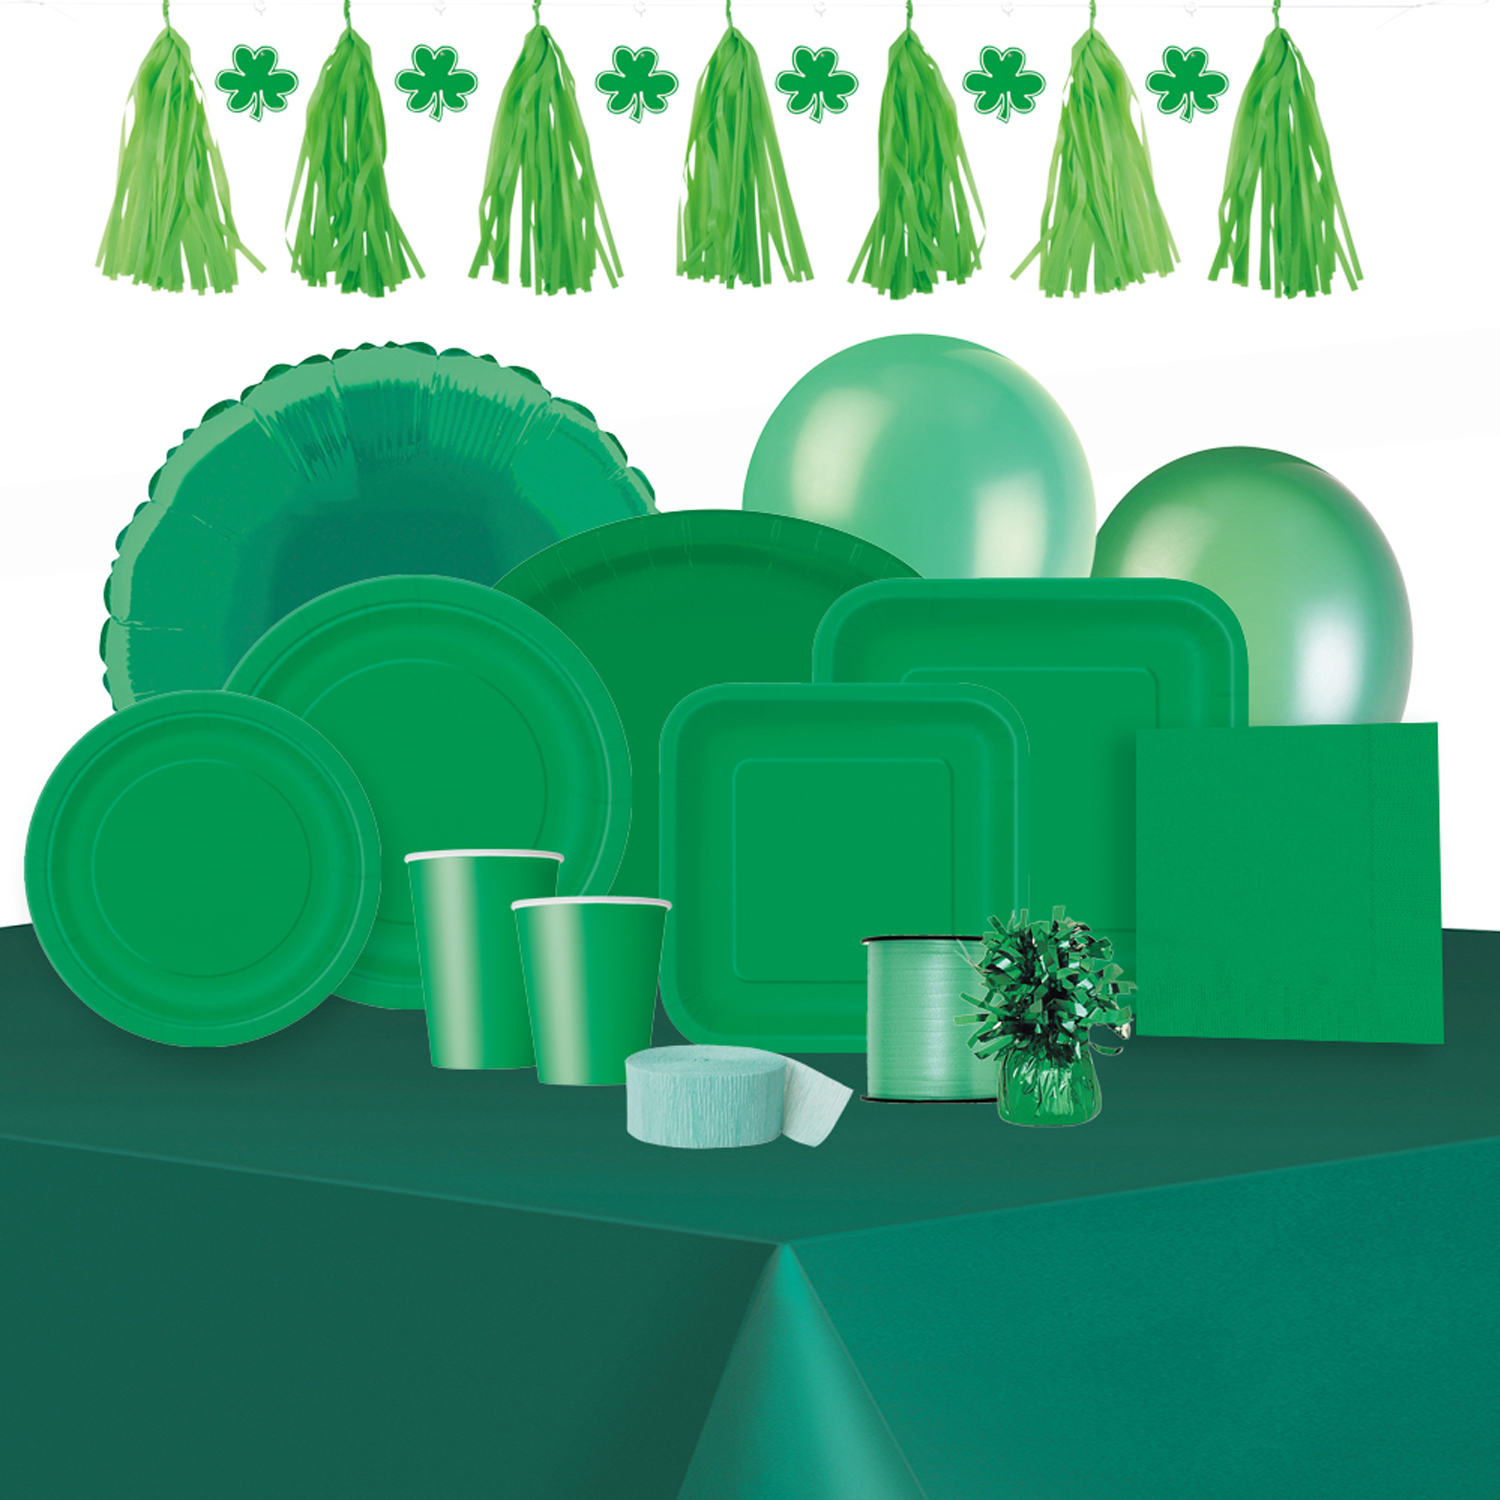 Image 2 of 3 & Paper Plates 9 in Green 16ct - Walmart.com